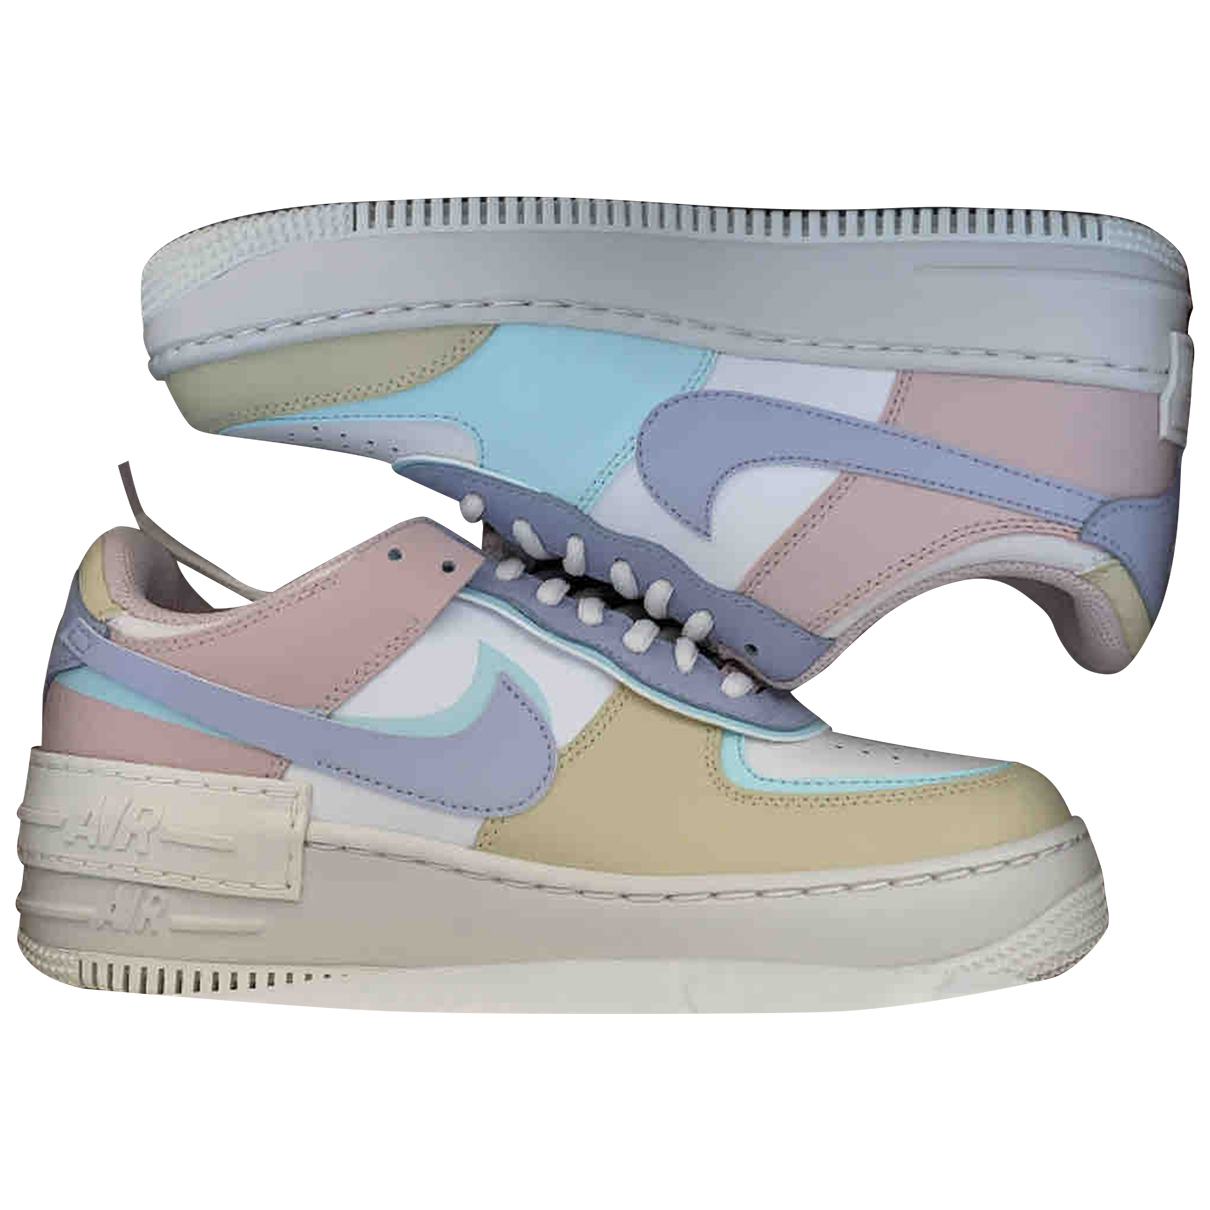 Nike - Baskets Air Force 1 pour femme en cuir - multicolore